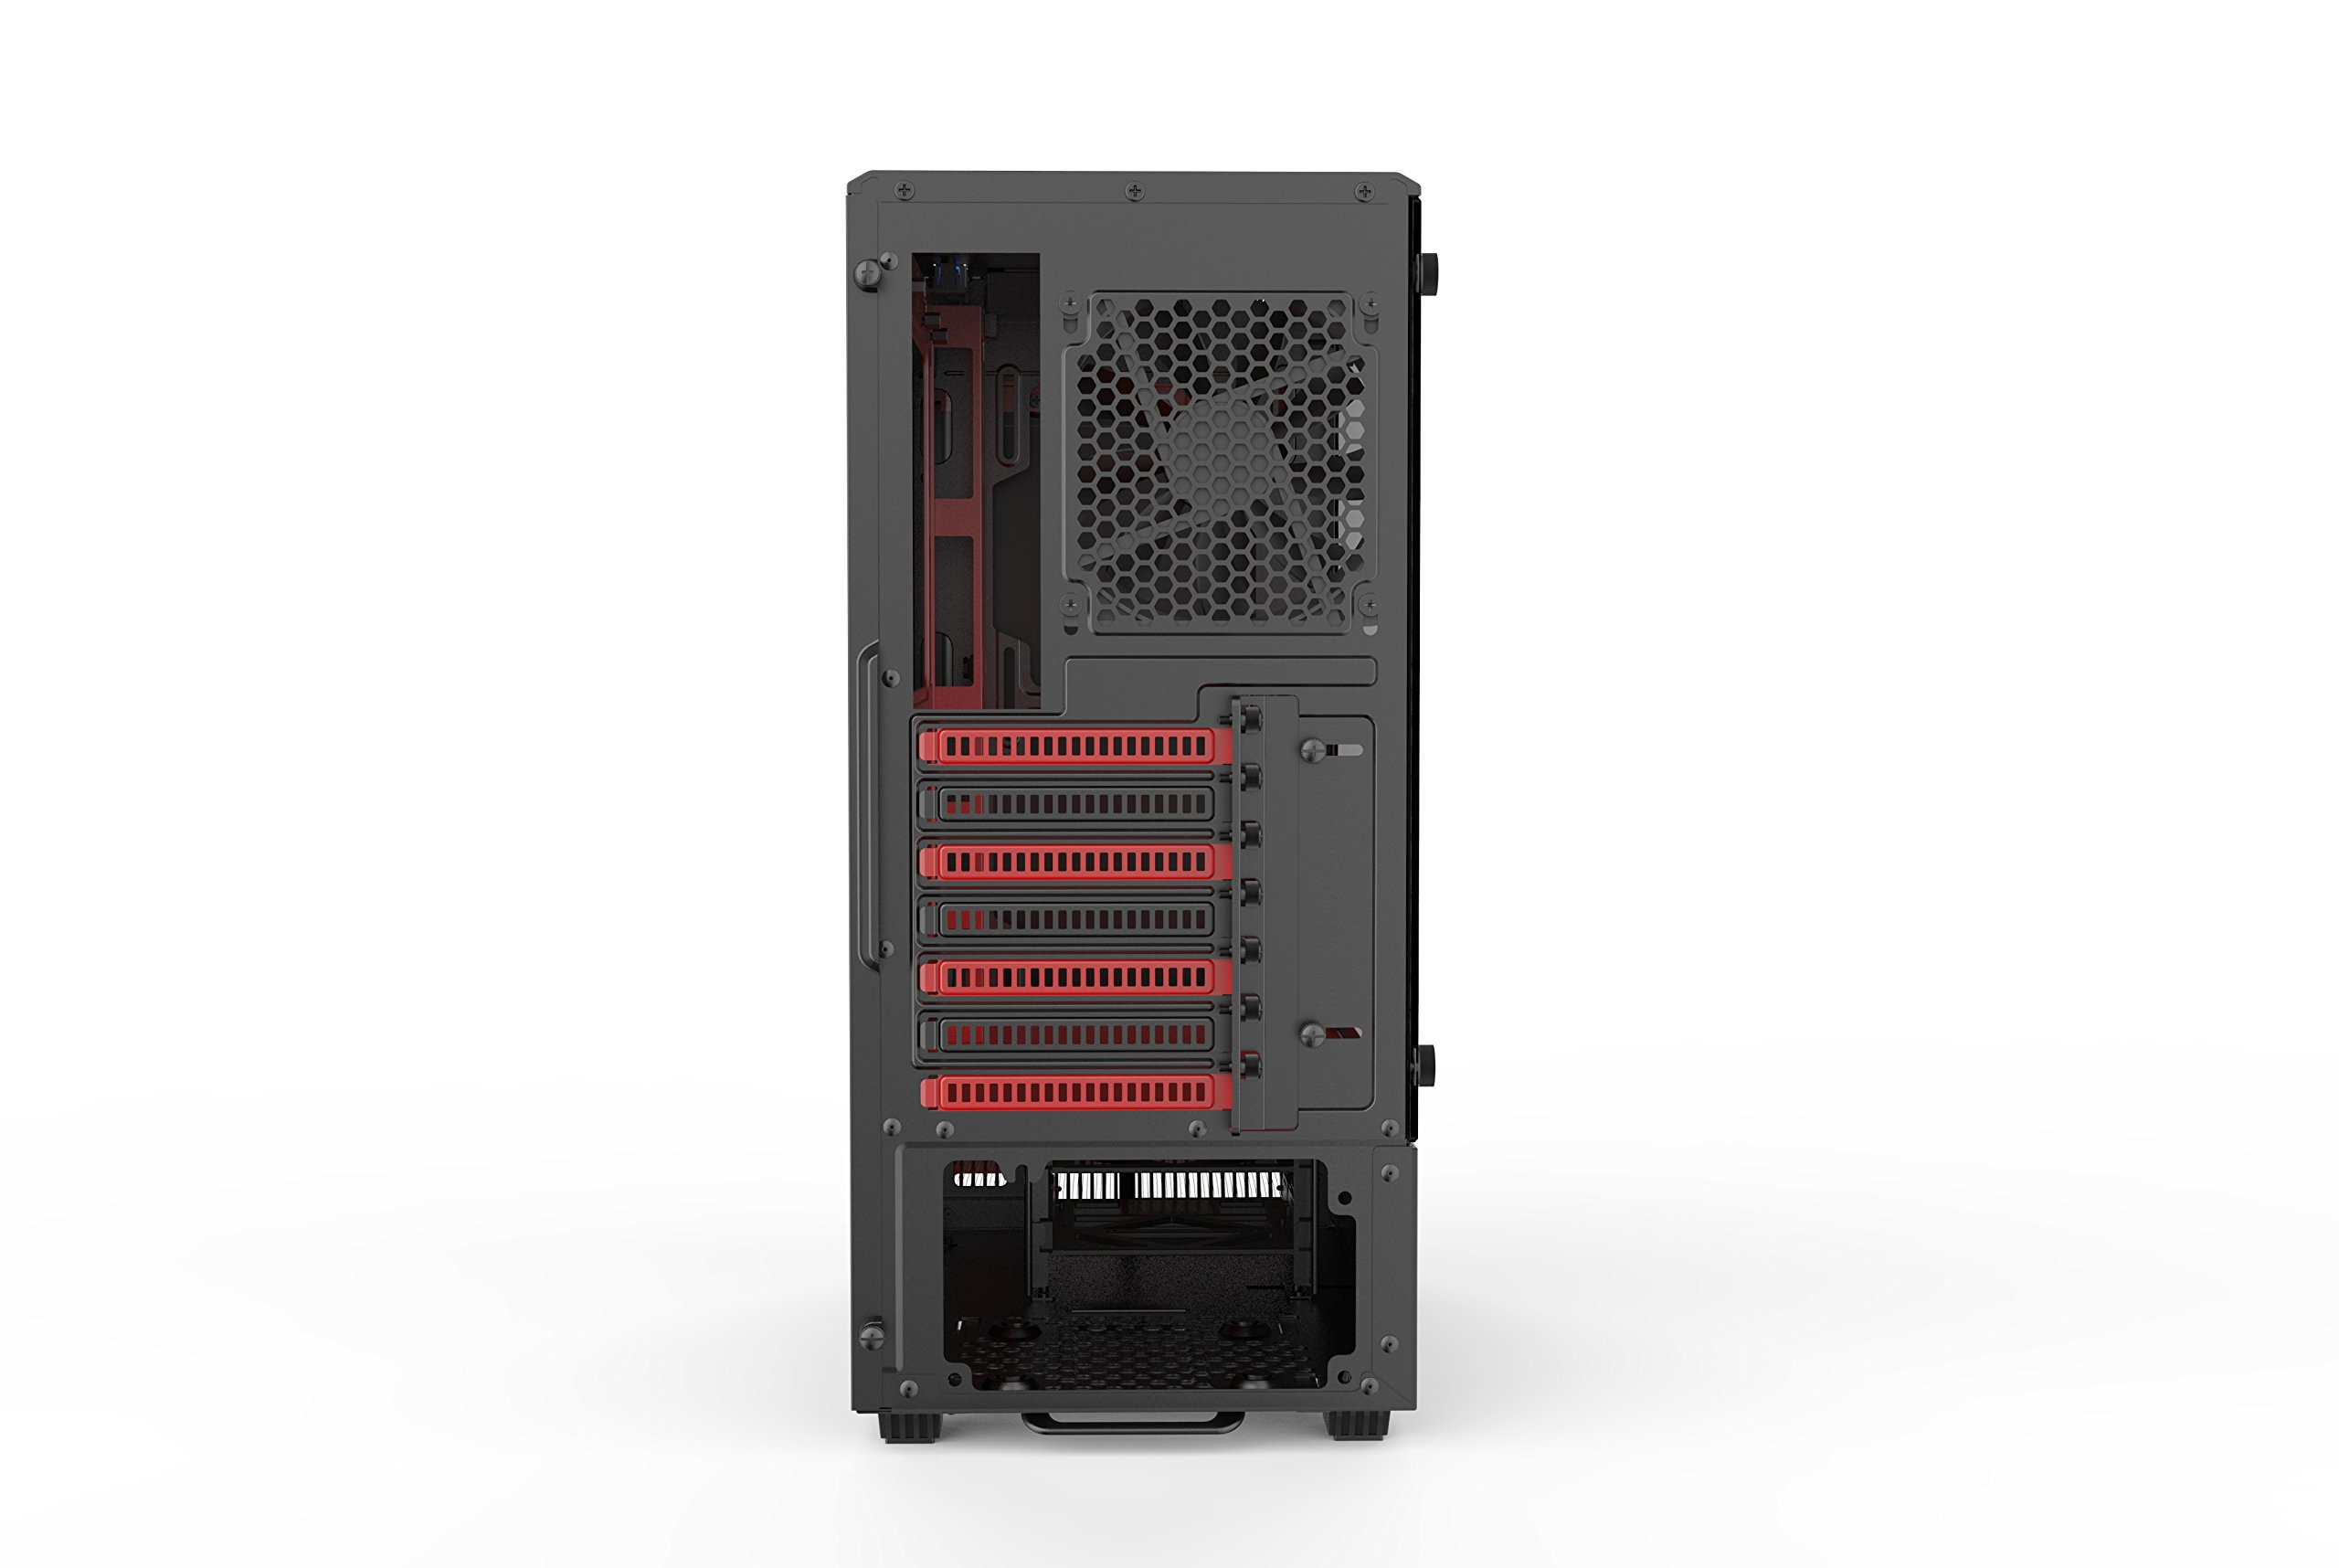 Phanteks PH-EC300PTG_BR Eclipse P300 Tempered Glass Steel ATX Mid Tower Case Black/Red by Phanteks (Image #2)